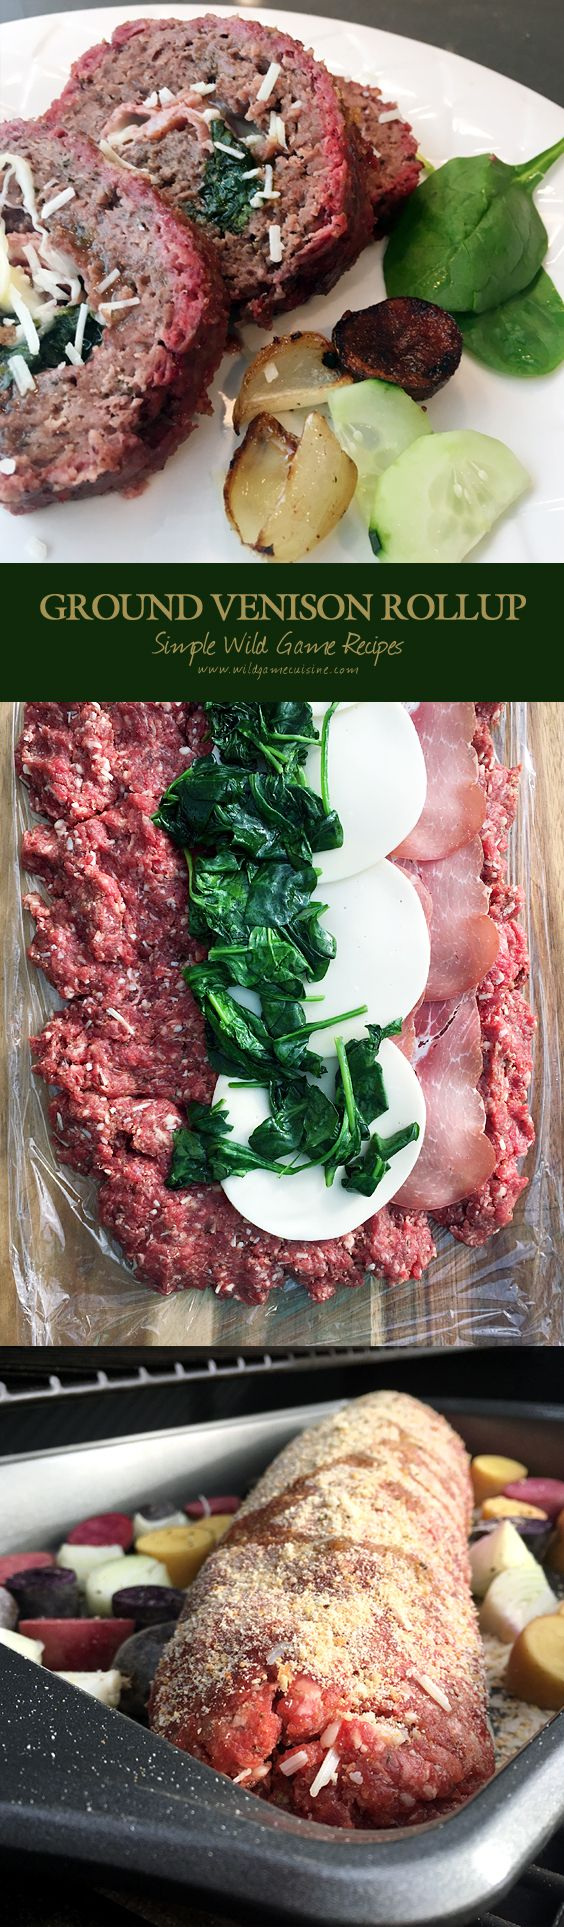 Ground Venison RollUp - If you're like me, you might find yourself constantly searching for New and Flavorful ways to utilize some of that ground game meat you have in the freezer. I know hamburgers, meatballs and tacos are some of the best of the best, but have you tried making a giant roll of ground meat stuffed with prosciutto, provolone and wilted spinach?  Think of it as a rolled up meatloaf filled with salty cured ham, cheese and a few greens. There's nothing wrong with that…